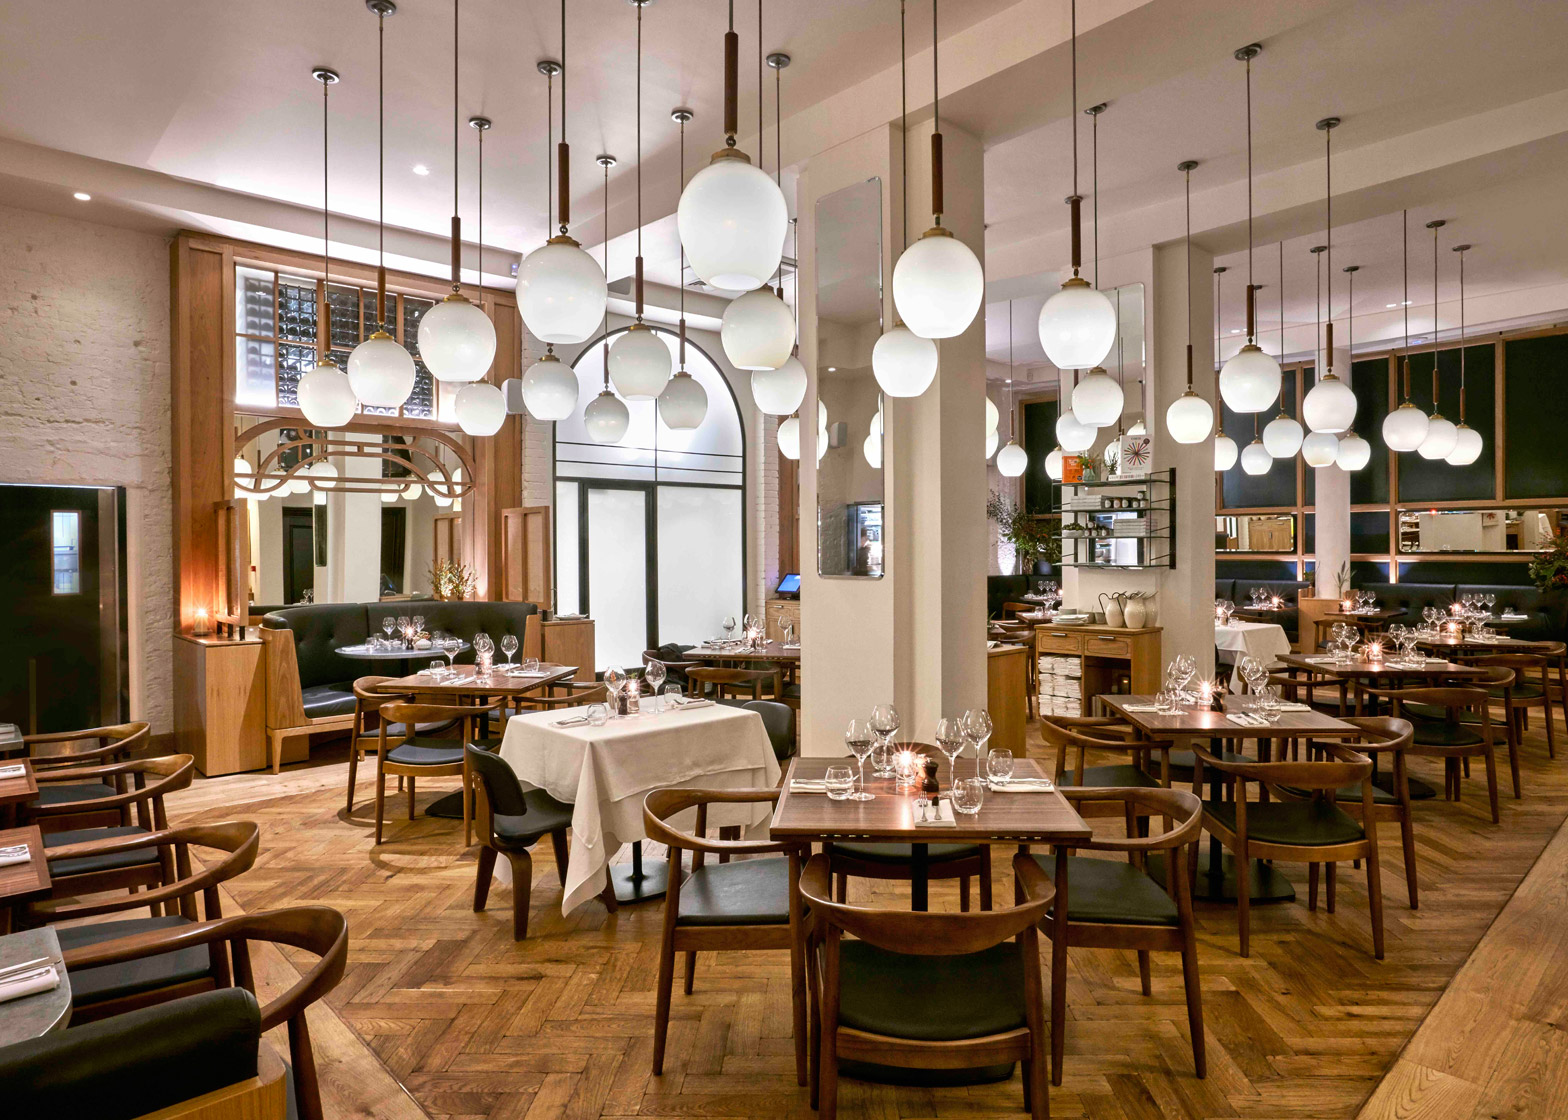 modern-pantry-avroko-restaurant-bar-interior-furniture-lighting-london-uk_dezeen_1568_7